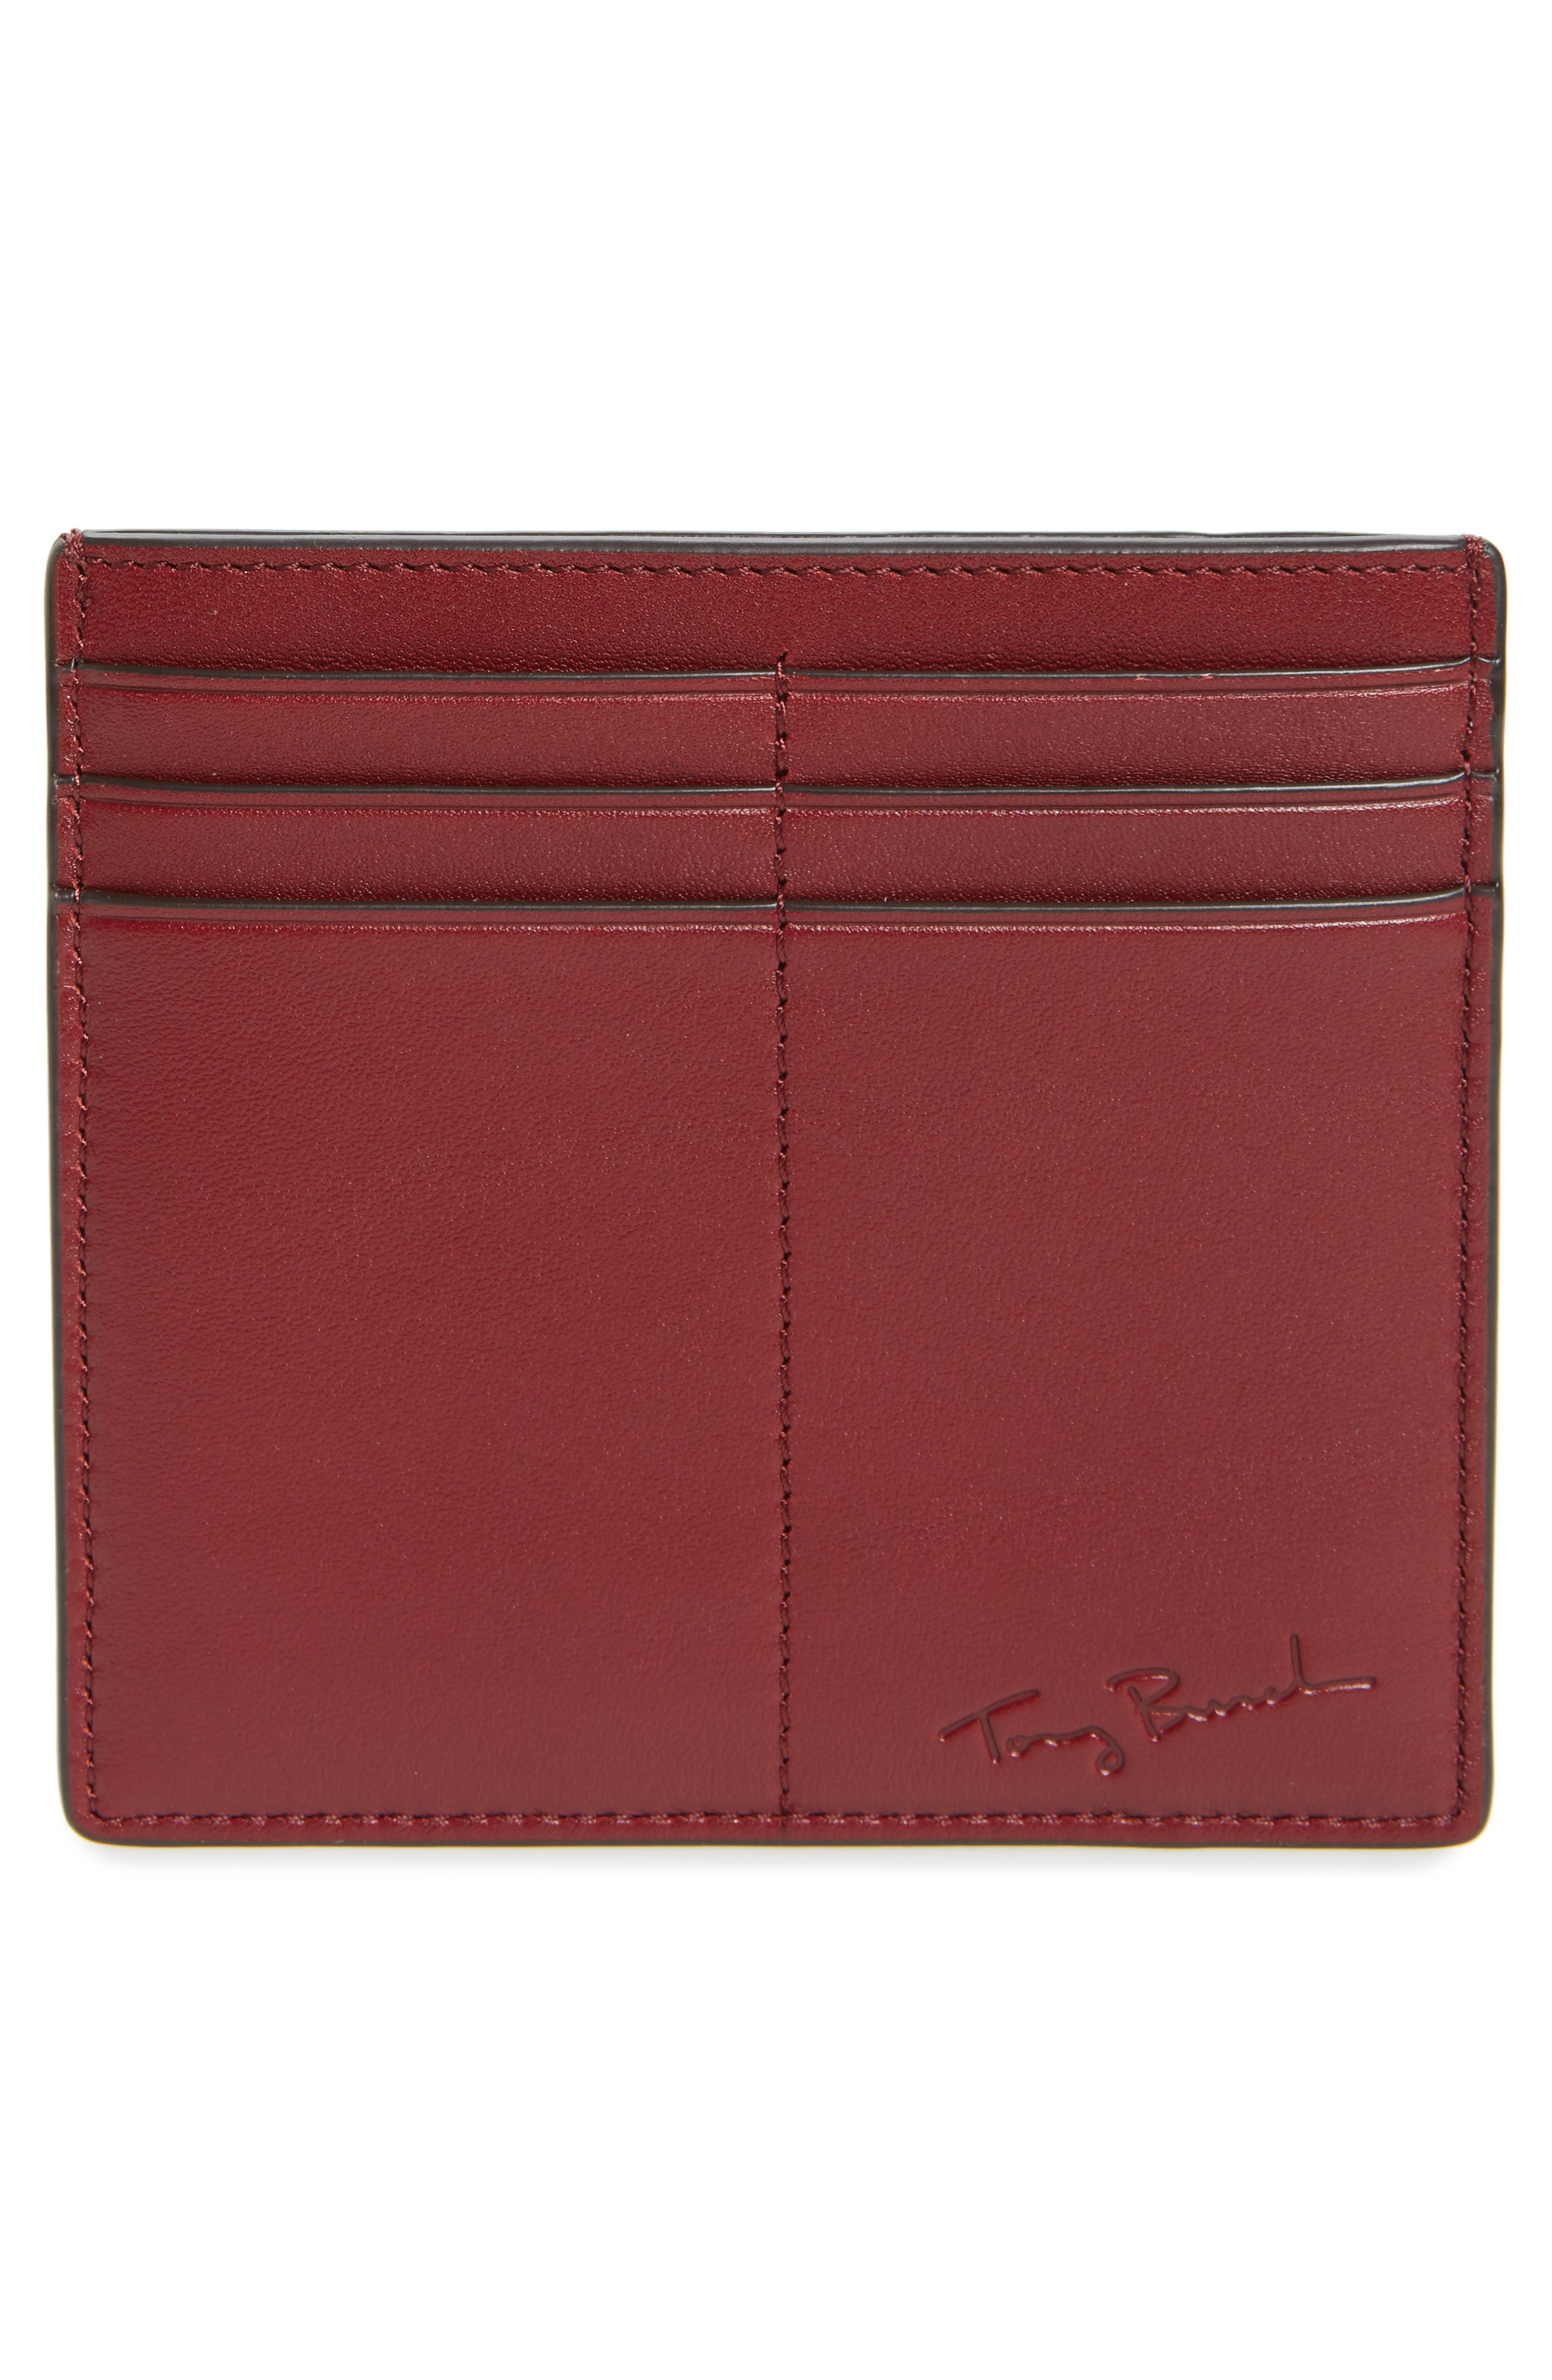 Martini Appliqué Leather Card Case,                             Alternate thumbnail 2, color,                             Imperial Garnet